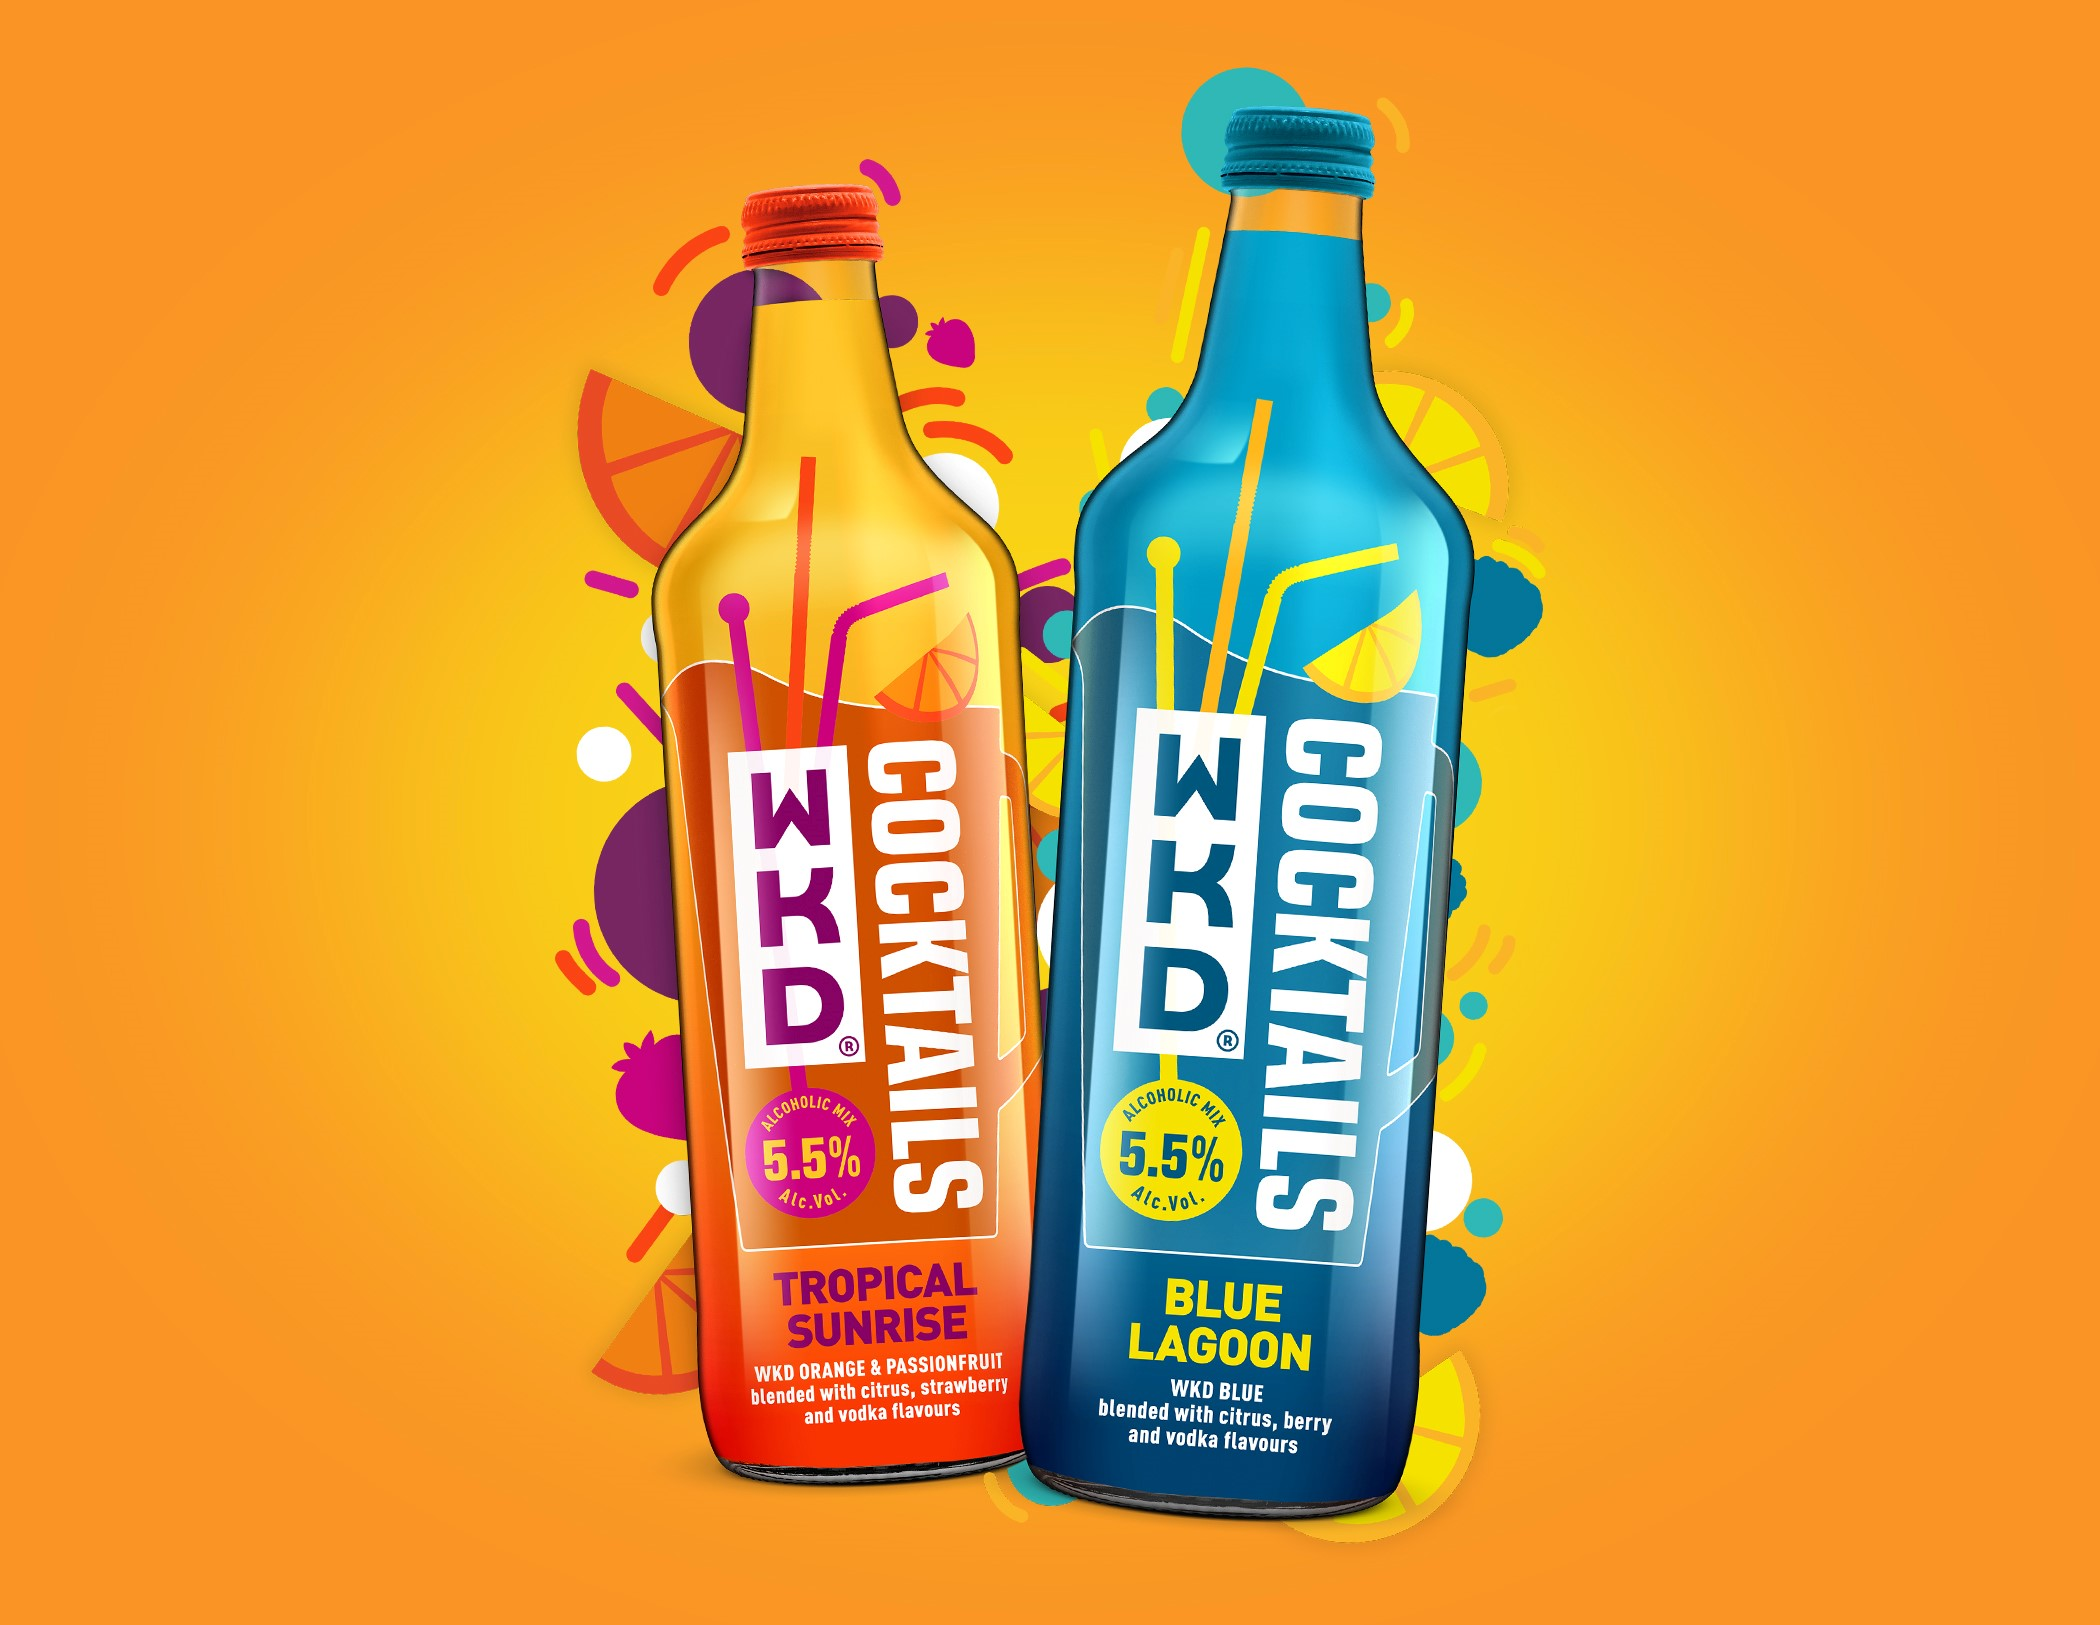 New WKD Cocktails – All the fun, none of the 'faff'